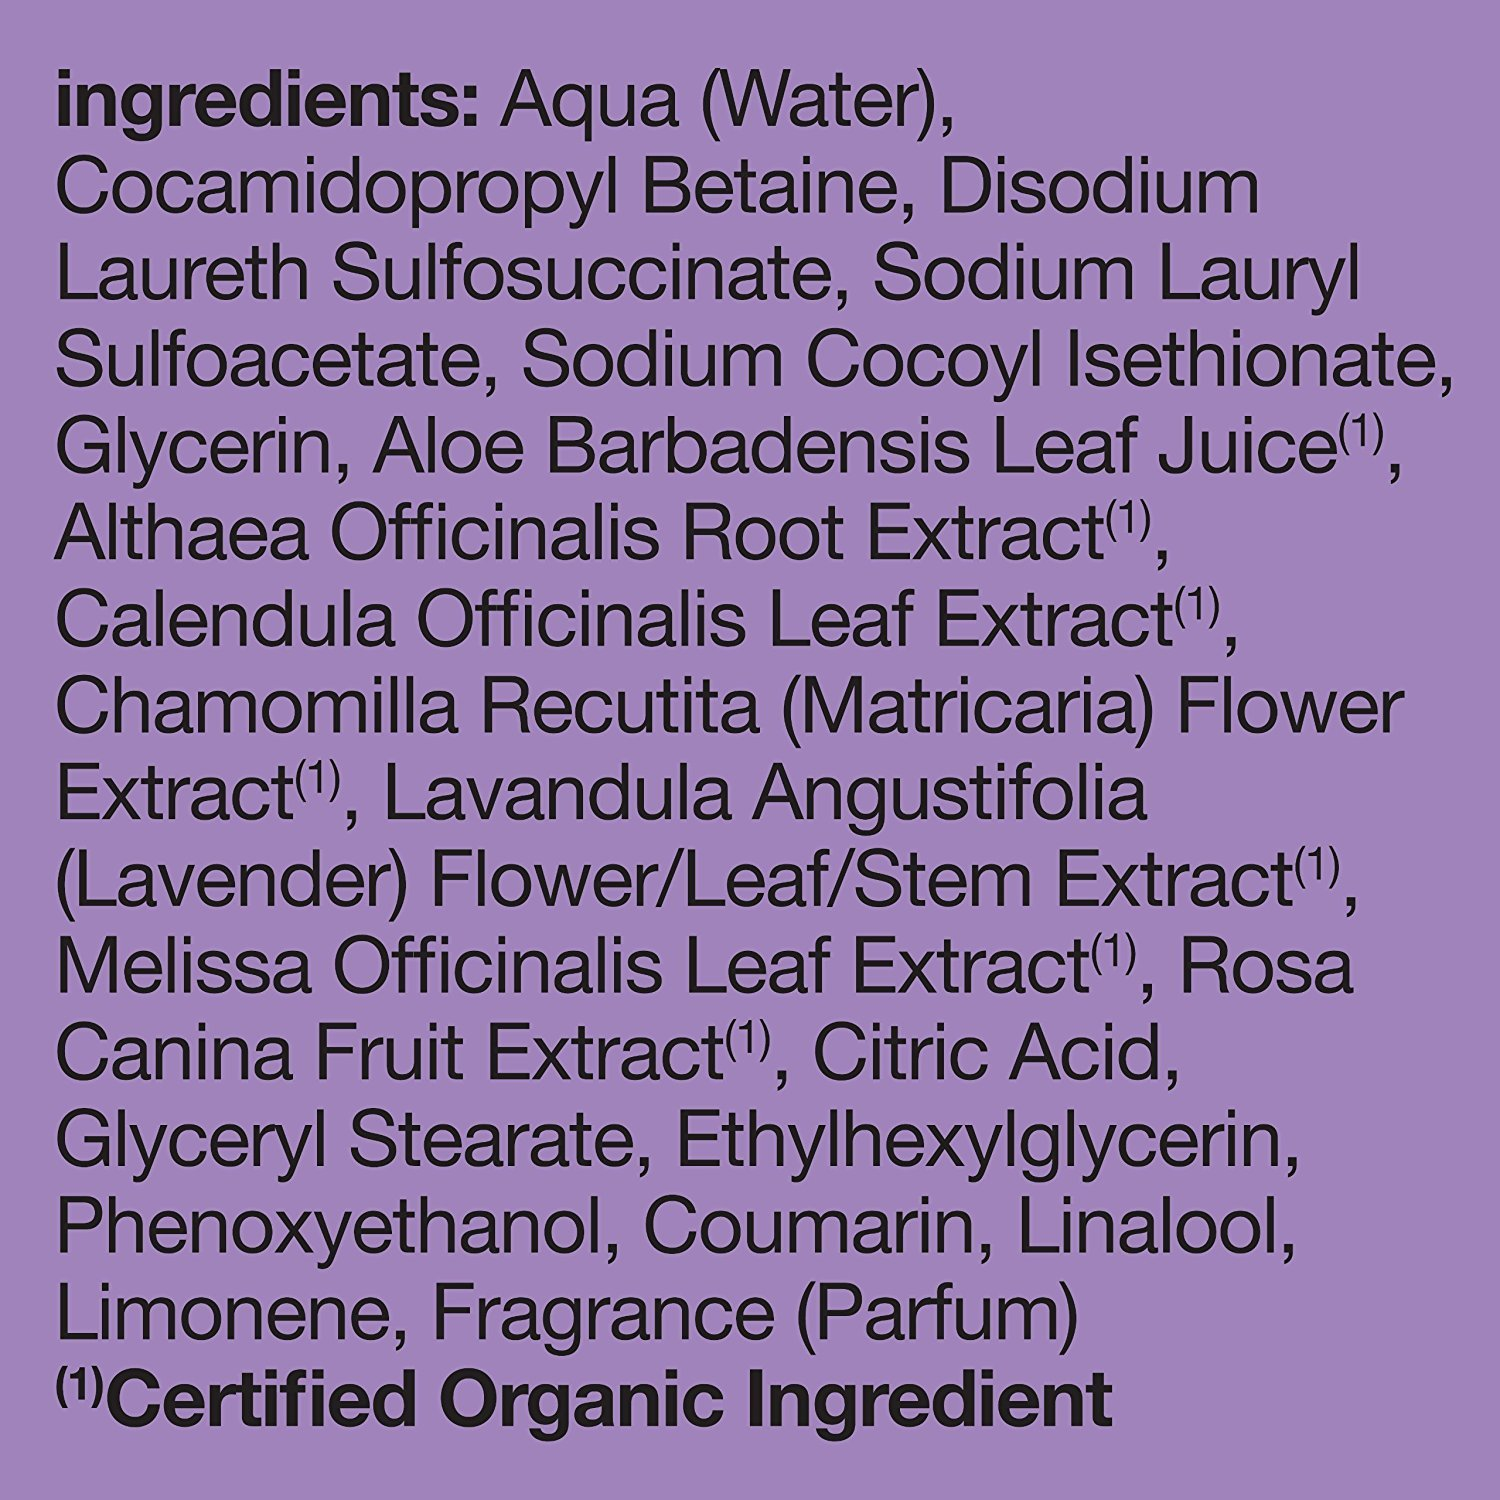 Alba Botanica Very Emollient, French Lavender Bath & Shower Gel, 32 Ounce by Alba Botanica (Image #2)